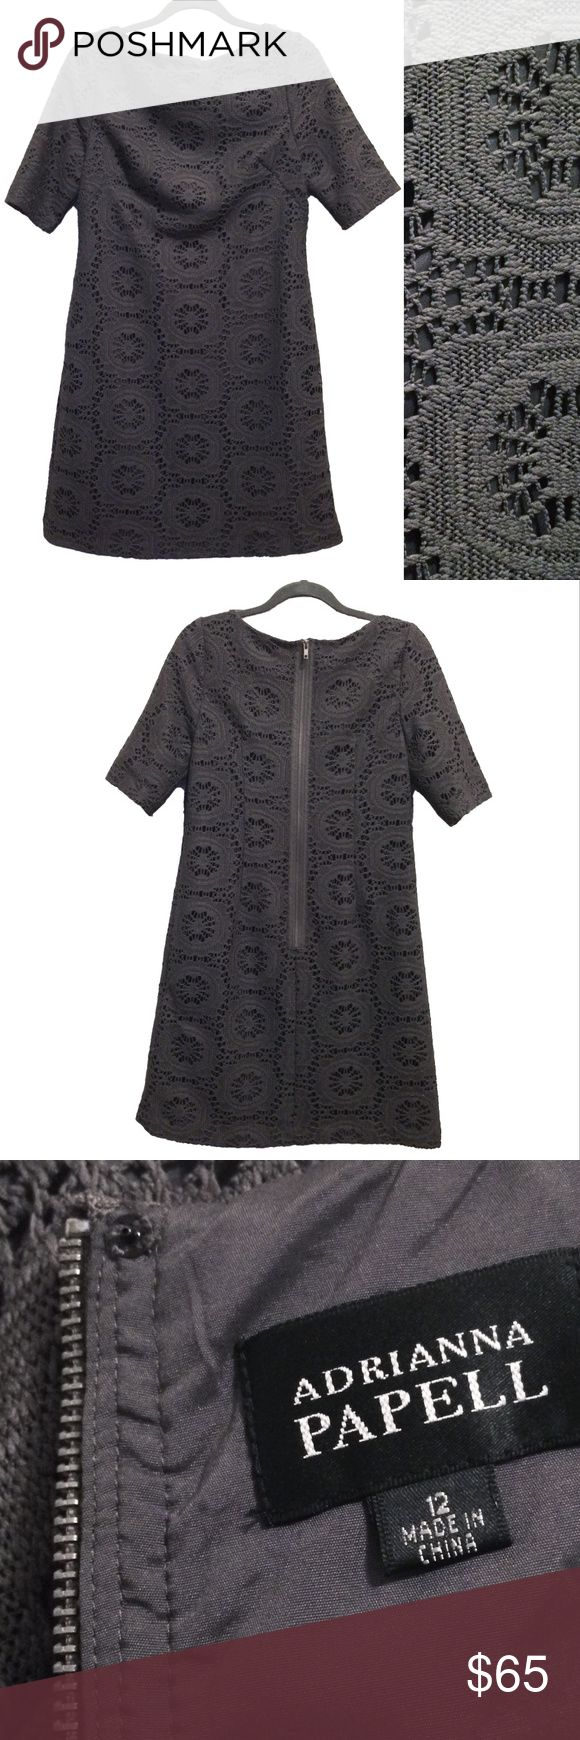 """Adrianna Papell crochet / lace shift dress Dark warm grey / charcoal crochet / lace dress with liner. Professional and stylish. Holiday party season perfection. Circa 2010/2011. Model pic from Nordstrom website to show drape and fit only. No stretch to thick fabric. Fully lined. Minor pull but easy fix/not visible when worn. (see pic) Short sleeves, darts on chest for a fitted look to chest. Perfect for work.   Lay flat measures approx: pit to pit 18.5"""", waist 20.5"""", neck 10.5"""", length…"""